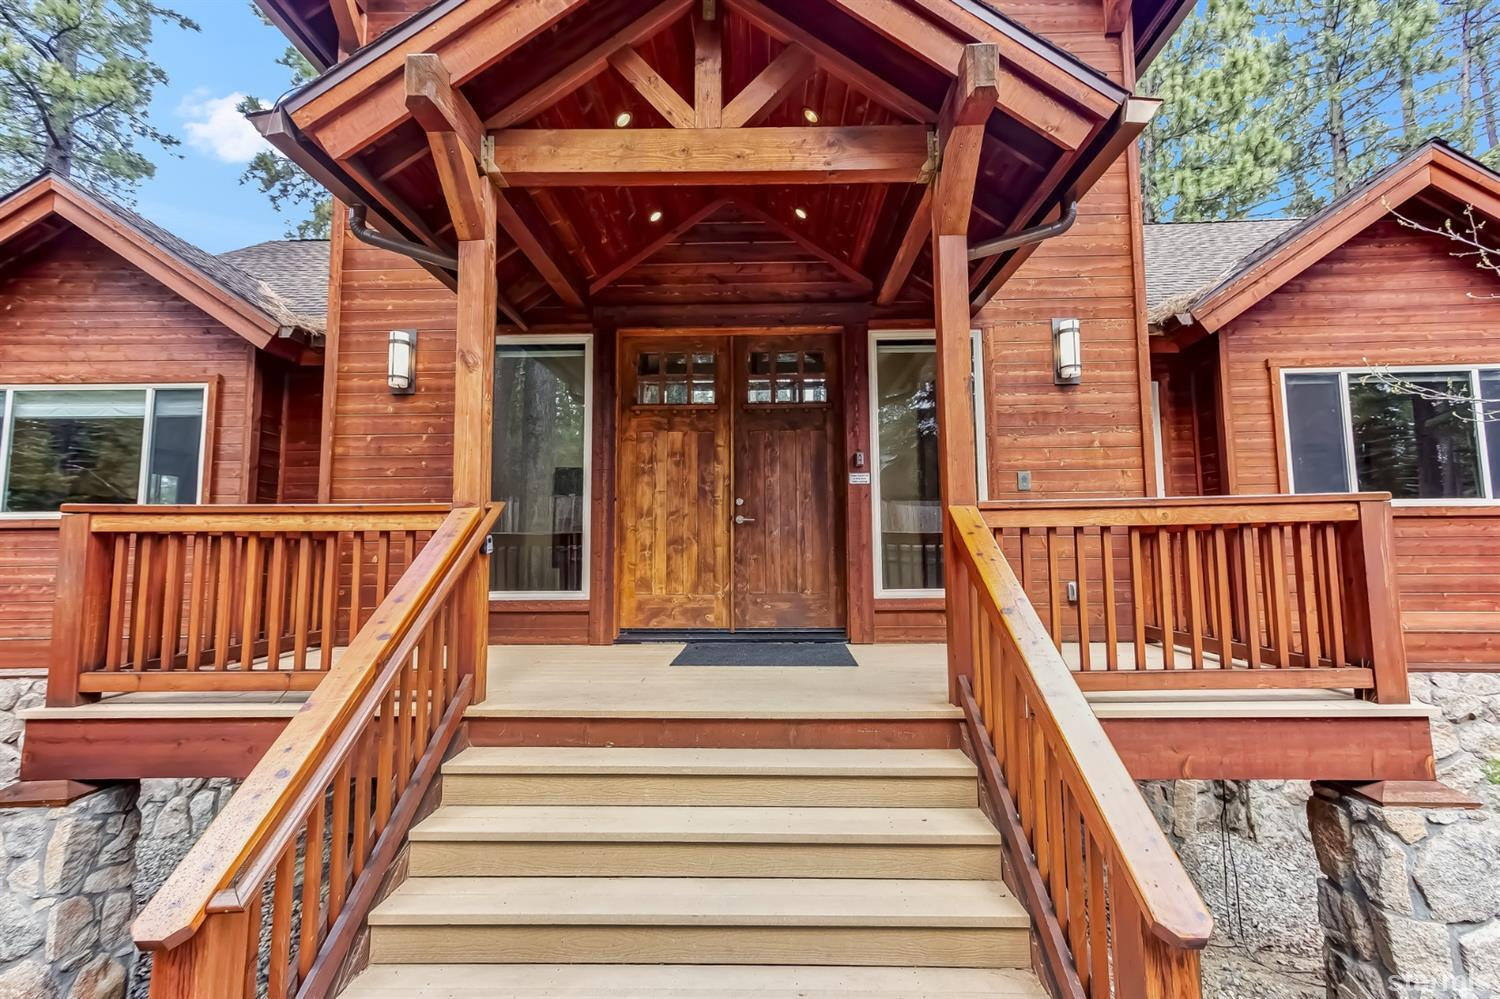 Image for 703 Roger Avenue, South Lake Tahoe, CA 96150